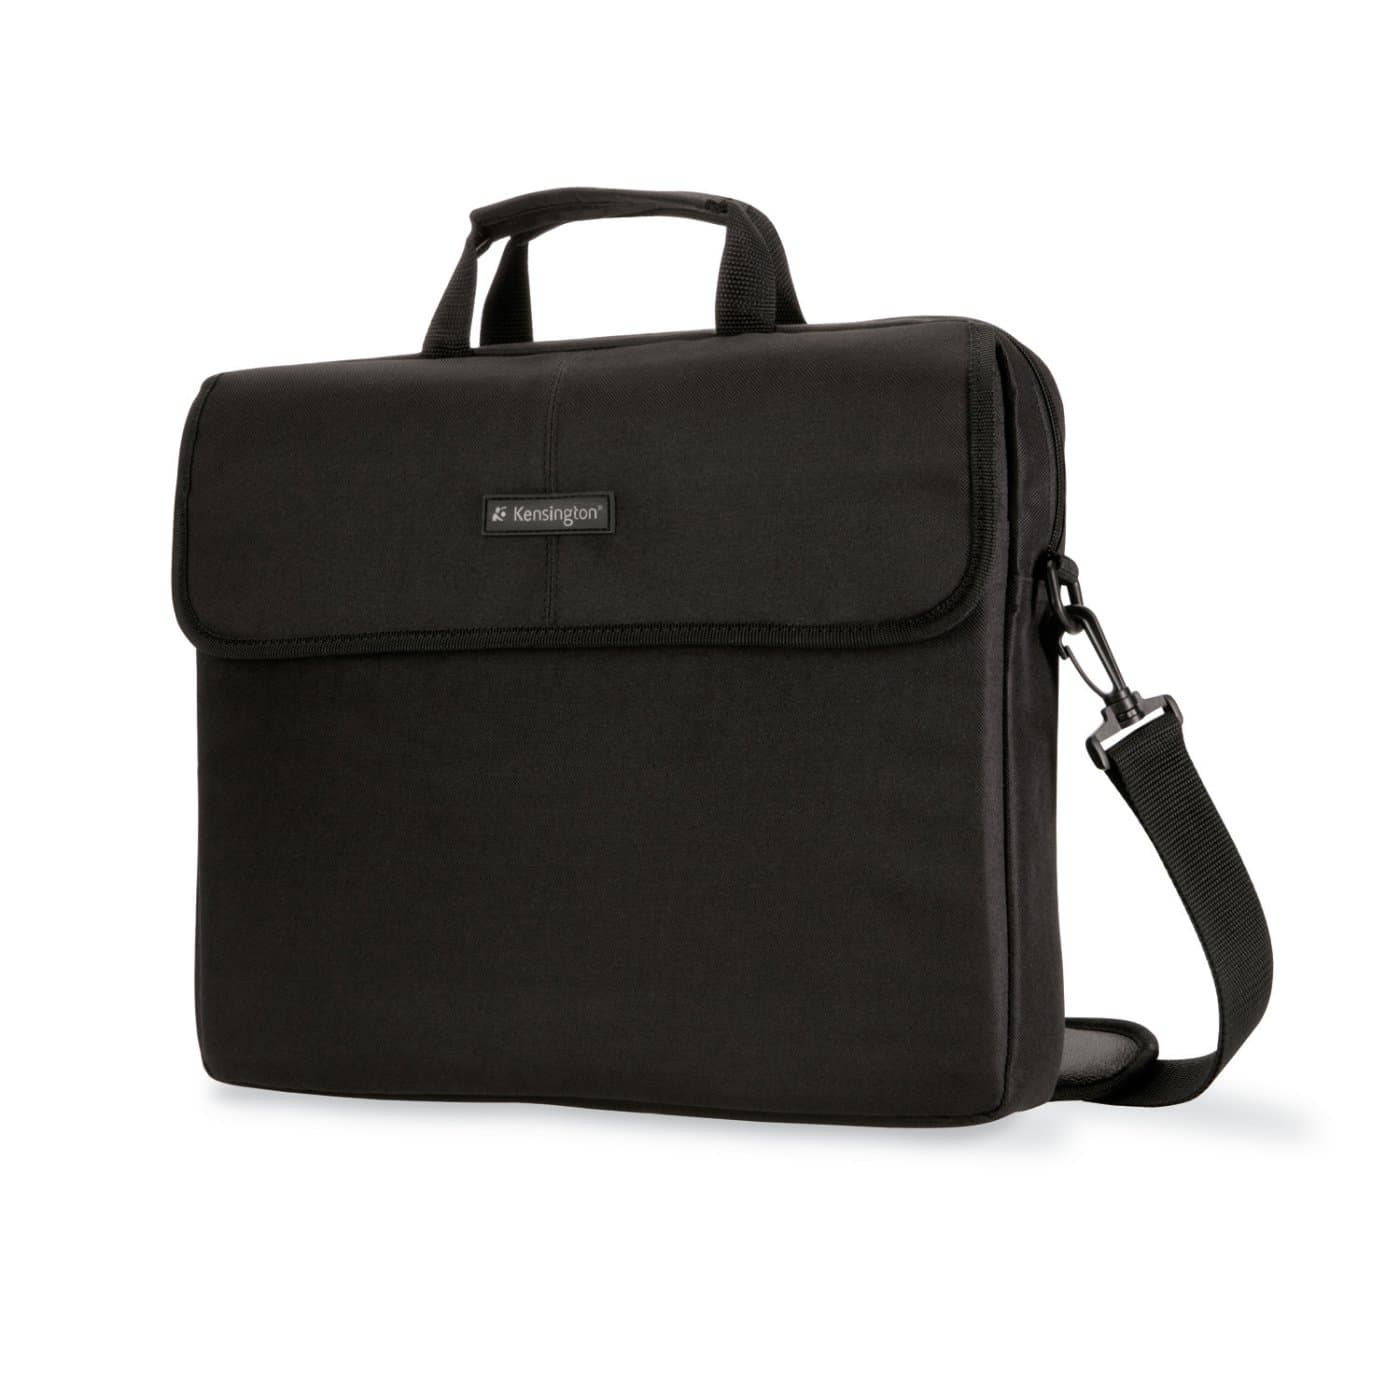 Kensington - Products - Laptop Bags - Sleeves - Simply Portable 15.6   Laptop  Sleeve- Black 3ade482f5ff